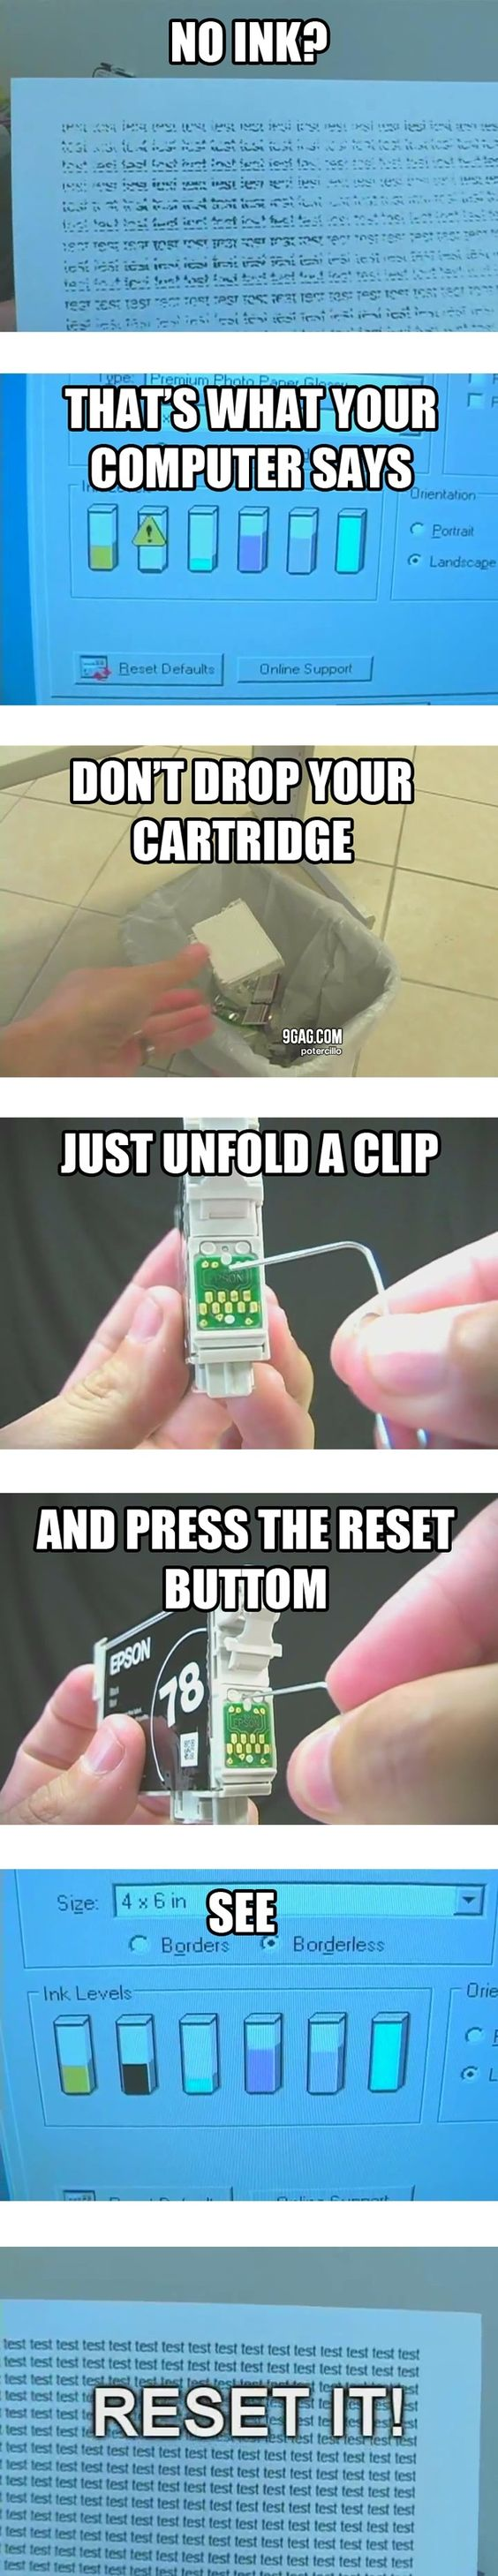 This works! How to get the last bit of ink out of your cartridges.